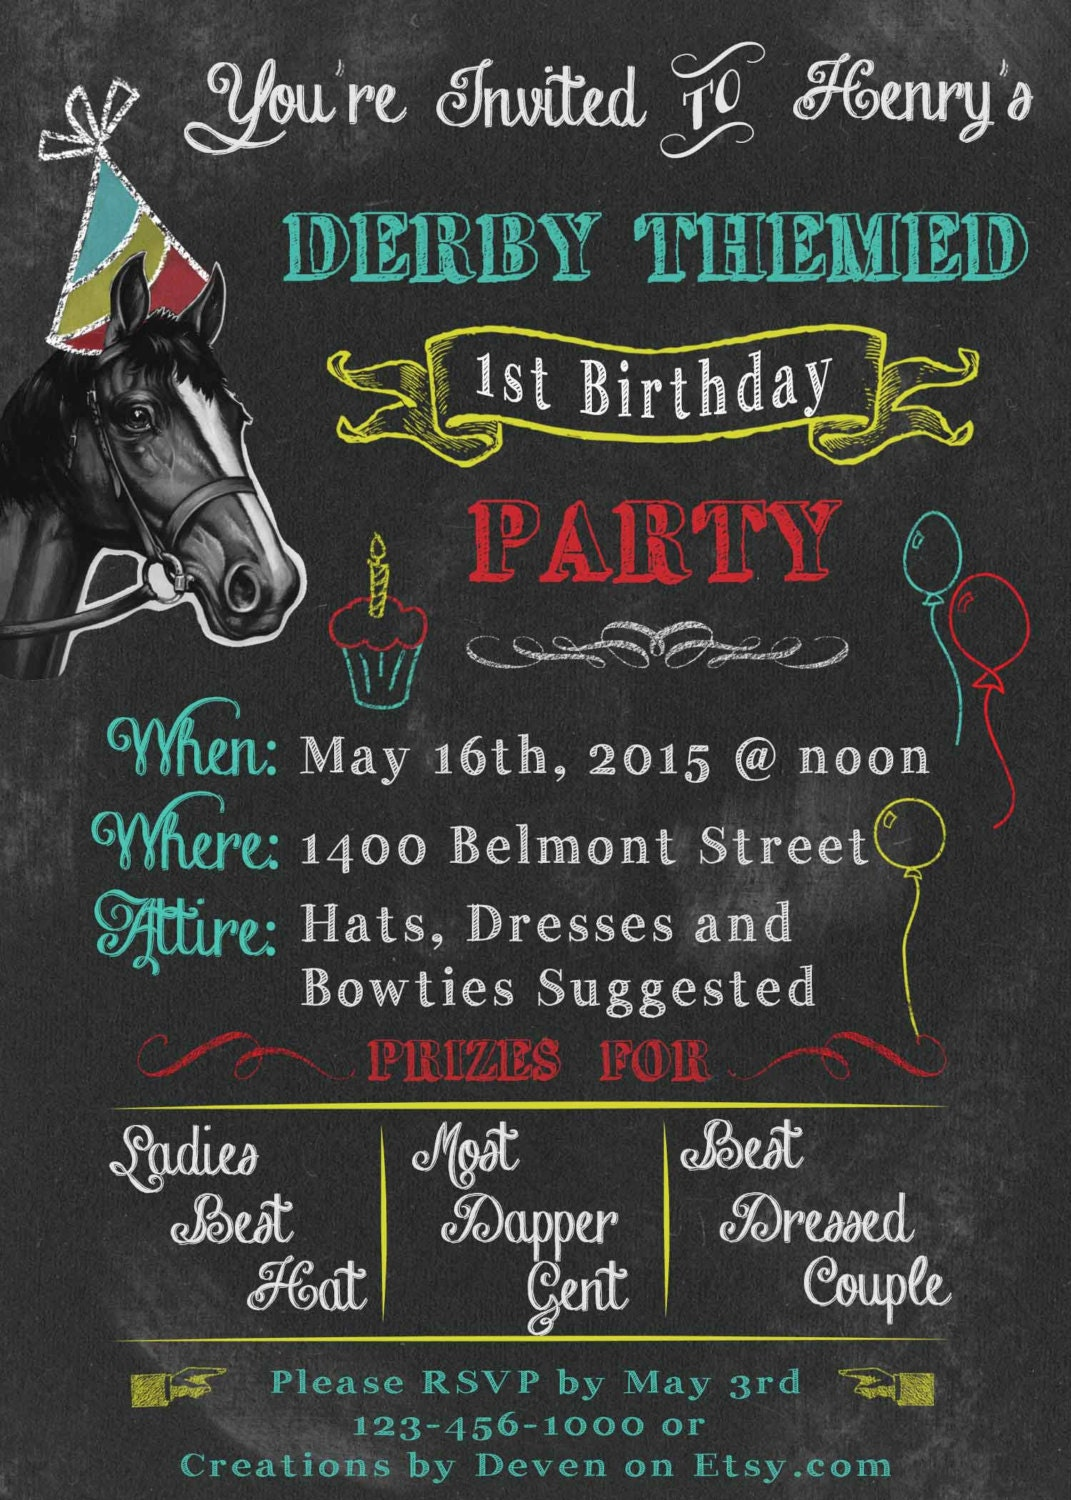 Kentucky Derby Themed Birthday Party Invitations Chalkboard